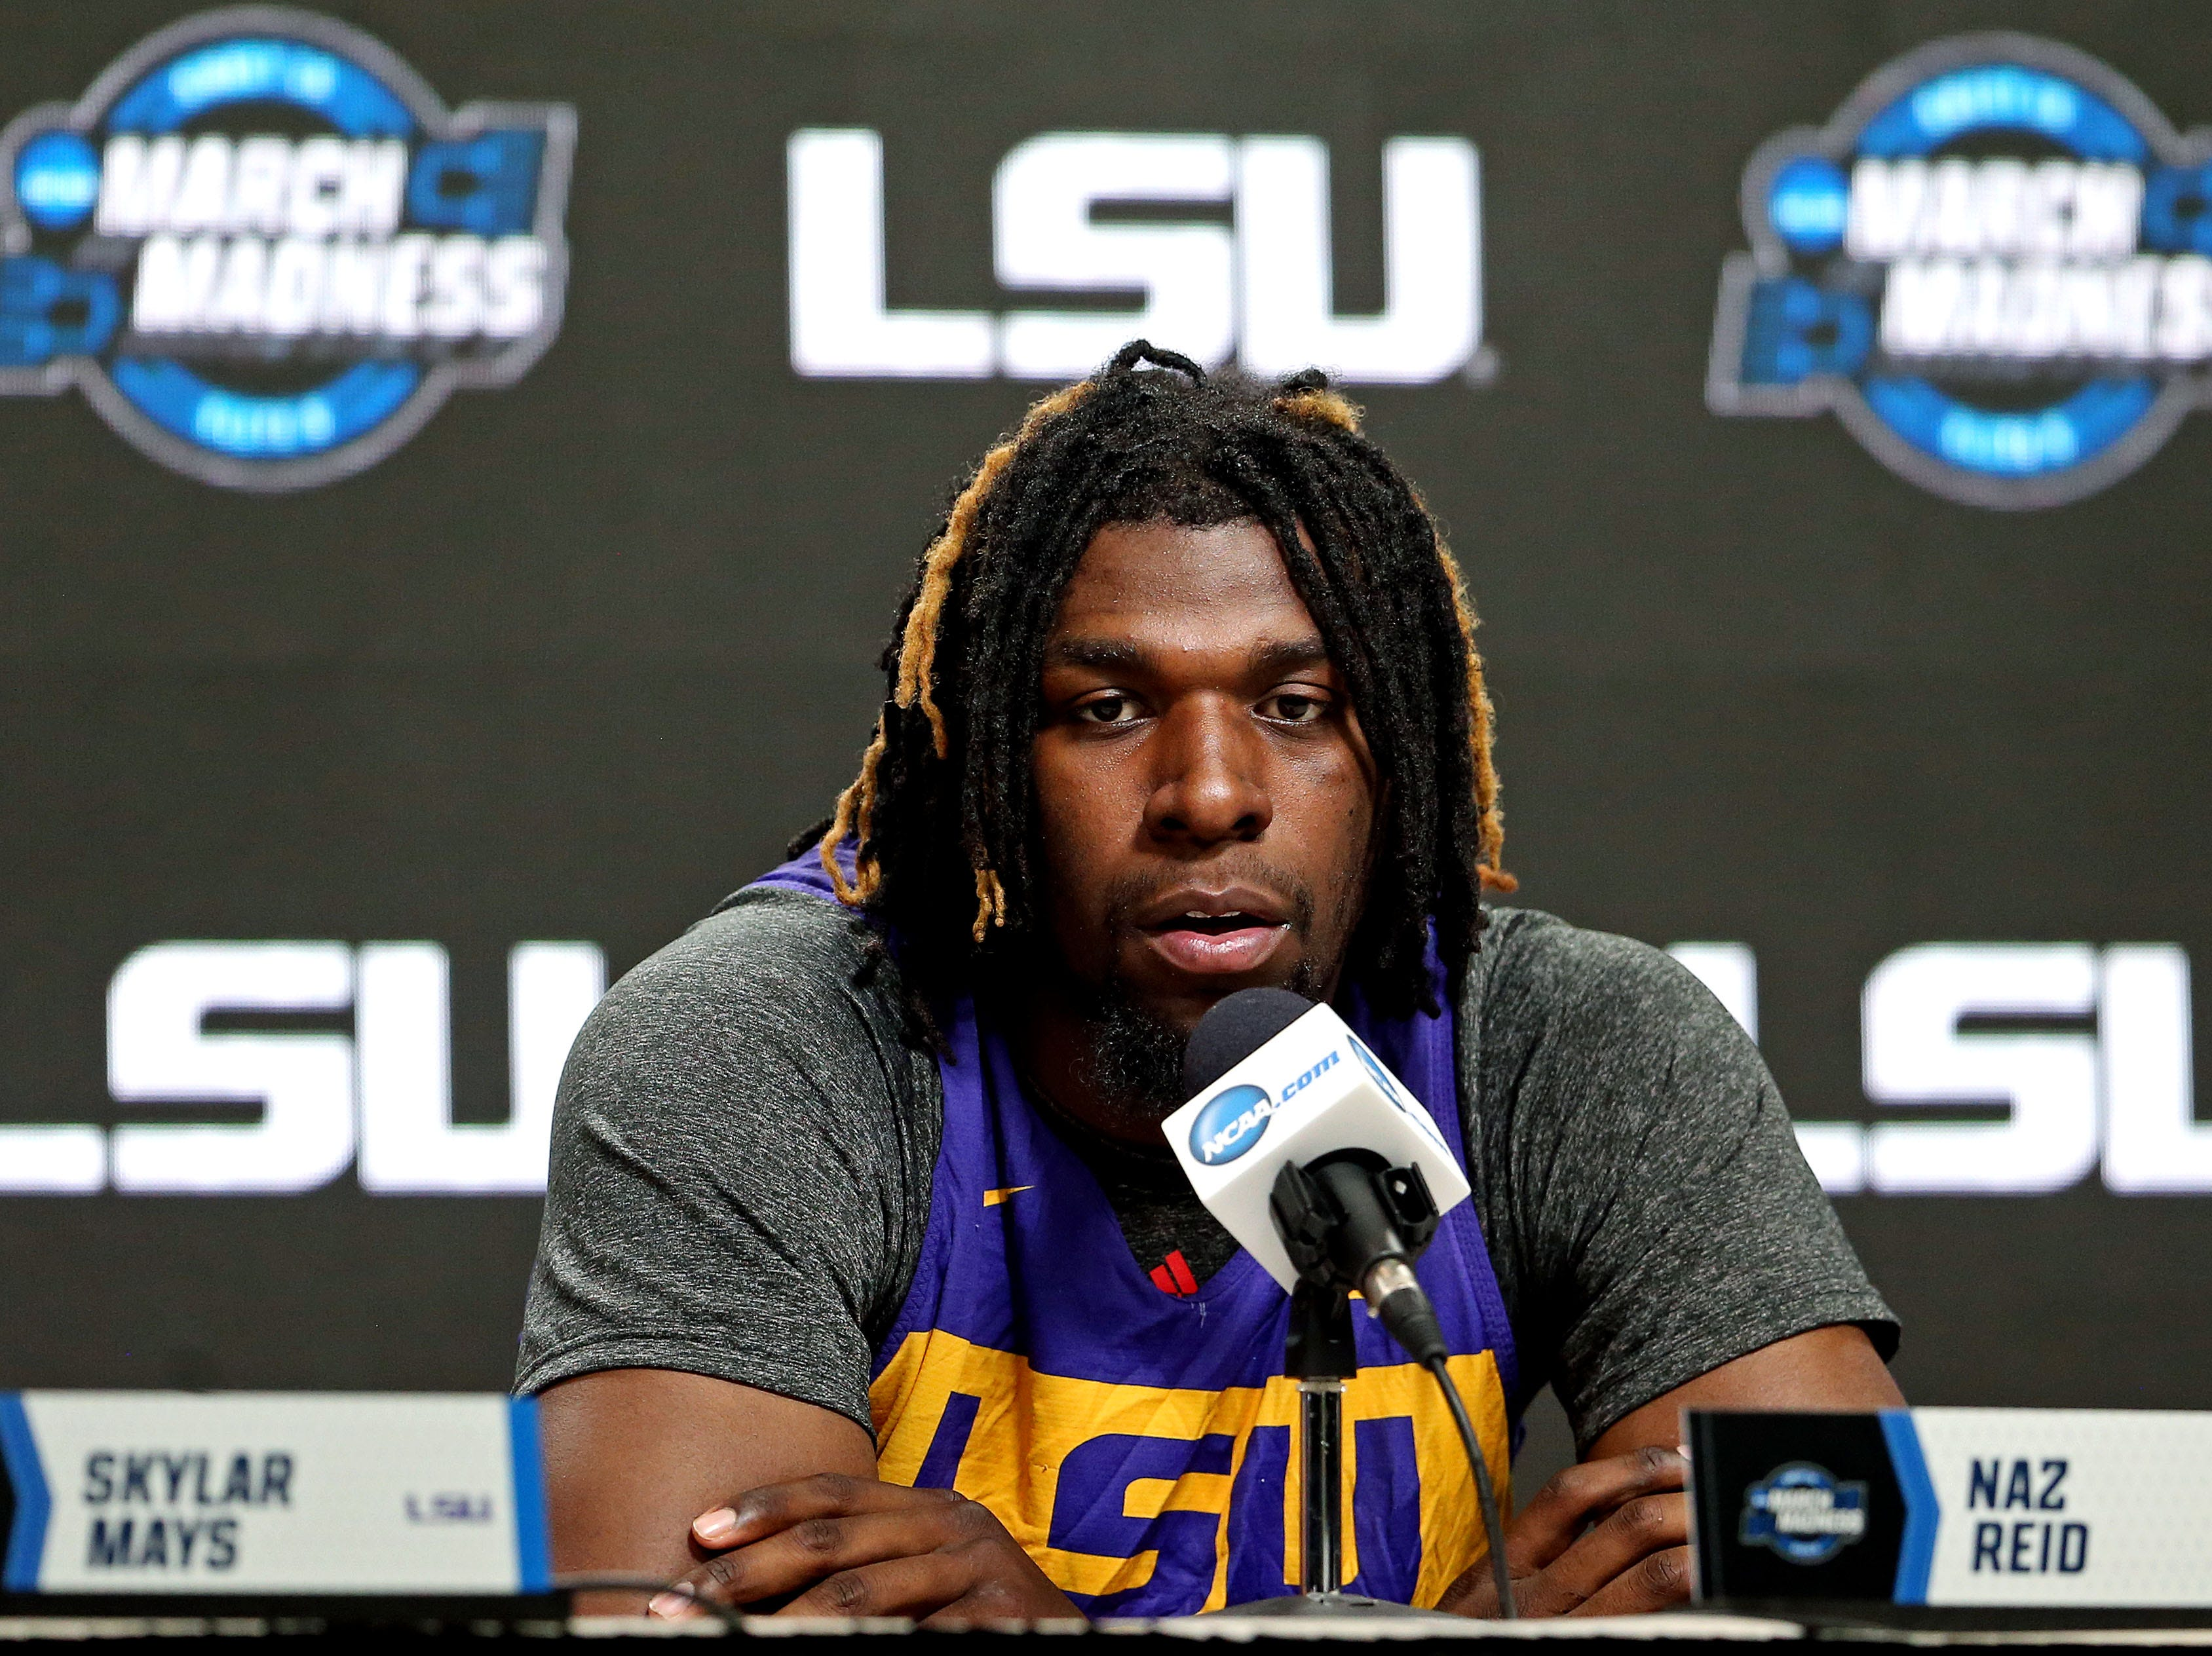 Mar 28, 2019; Washington, DC, USA; LSU Tigers forward Naz Reid (0) speaks in a press conference during practice for the east regional of the 2019 NCAA Tournament at Capital One Arena. Mandatory Credit: Peter Casey-USA TODAY Sports